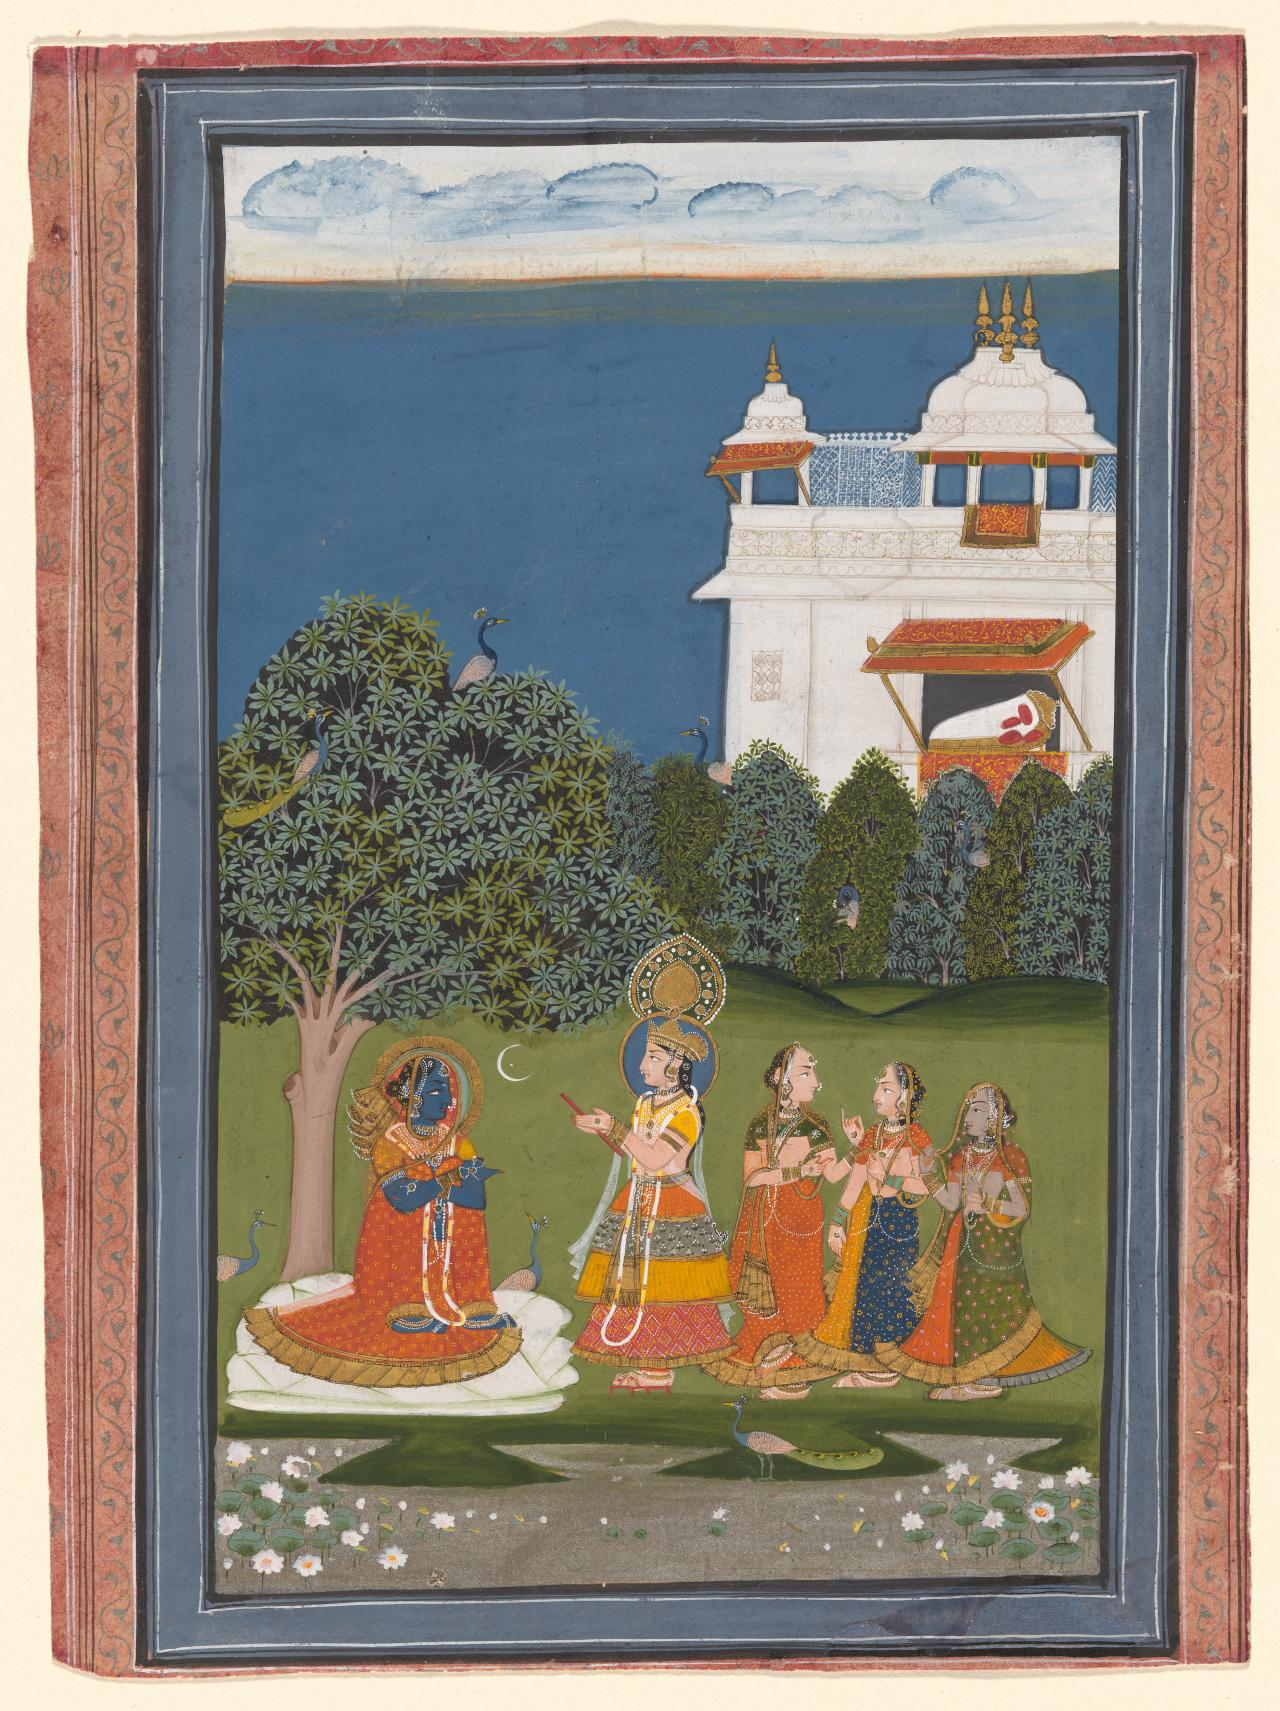 Radha and Krishna exchange clothes